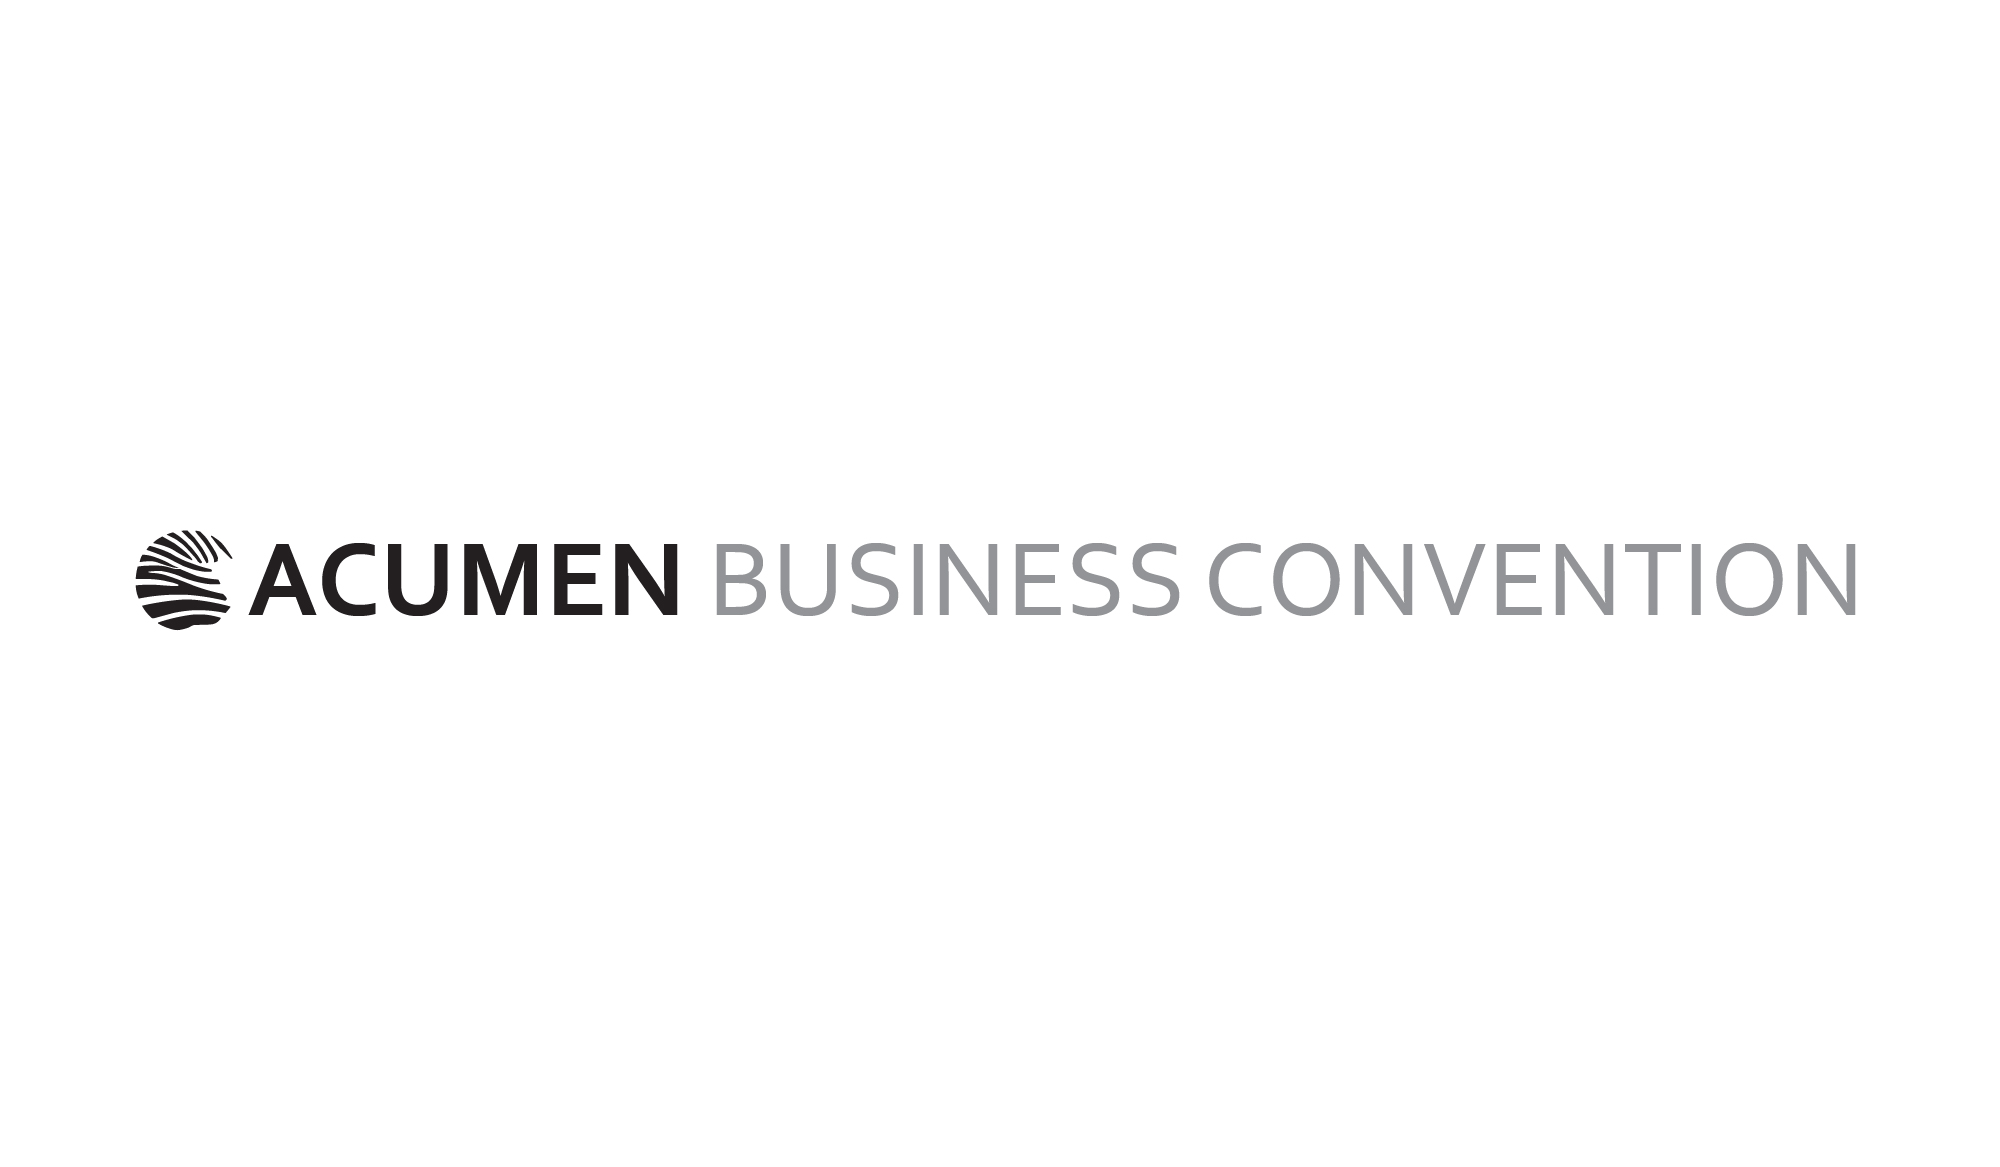 Rating for 2016 Acumen Business Convention Business Cards